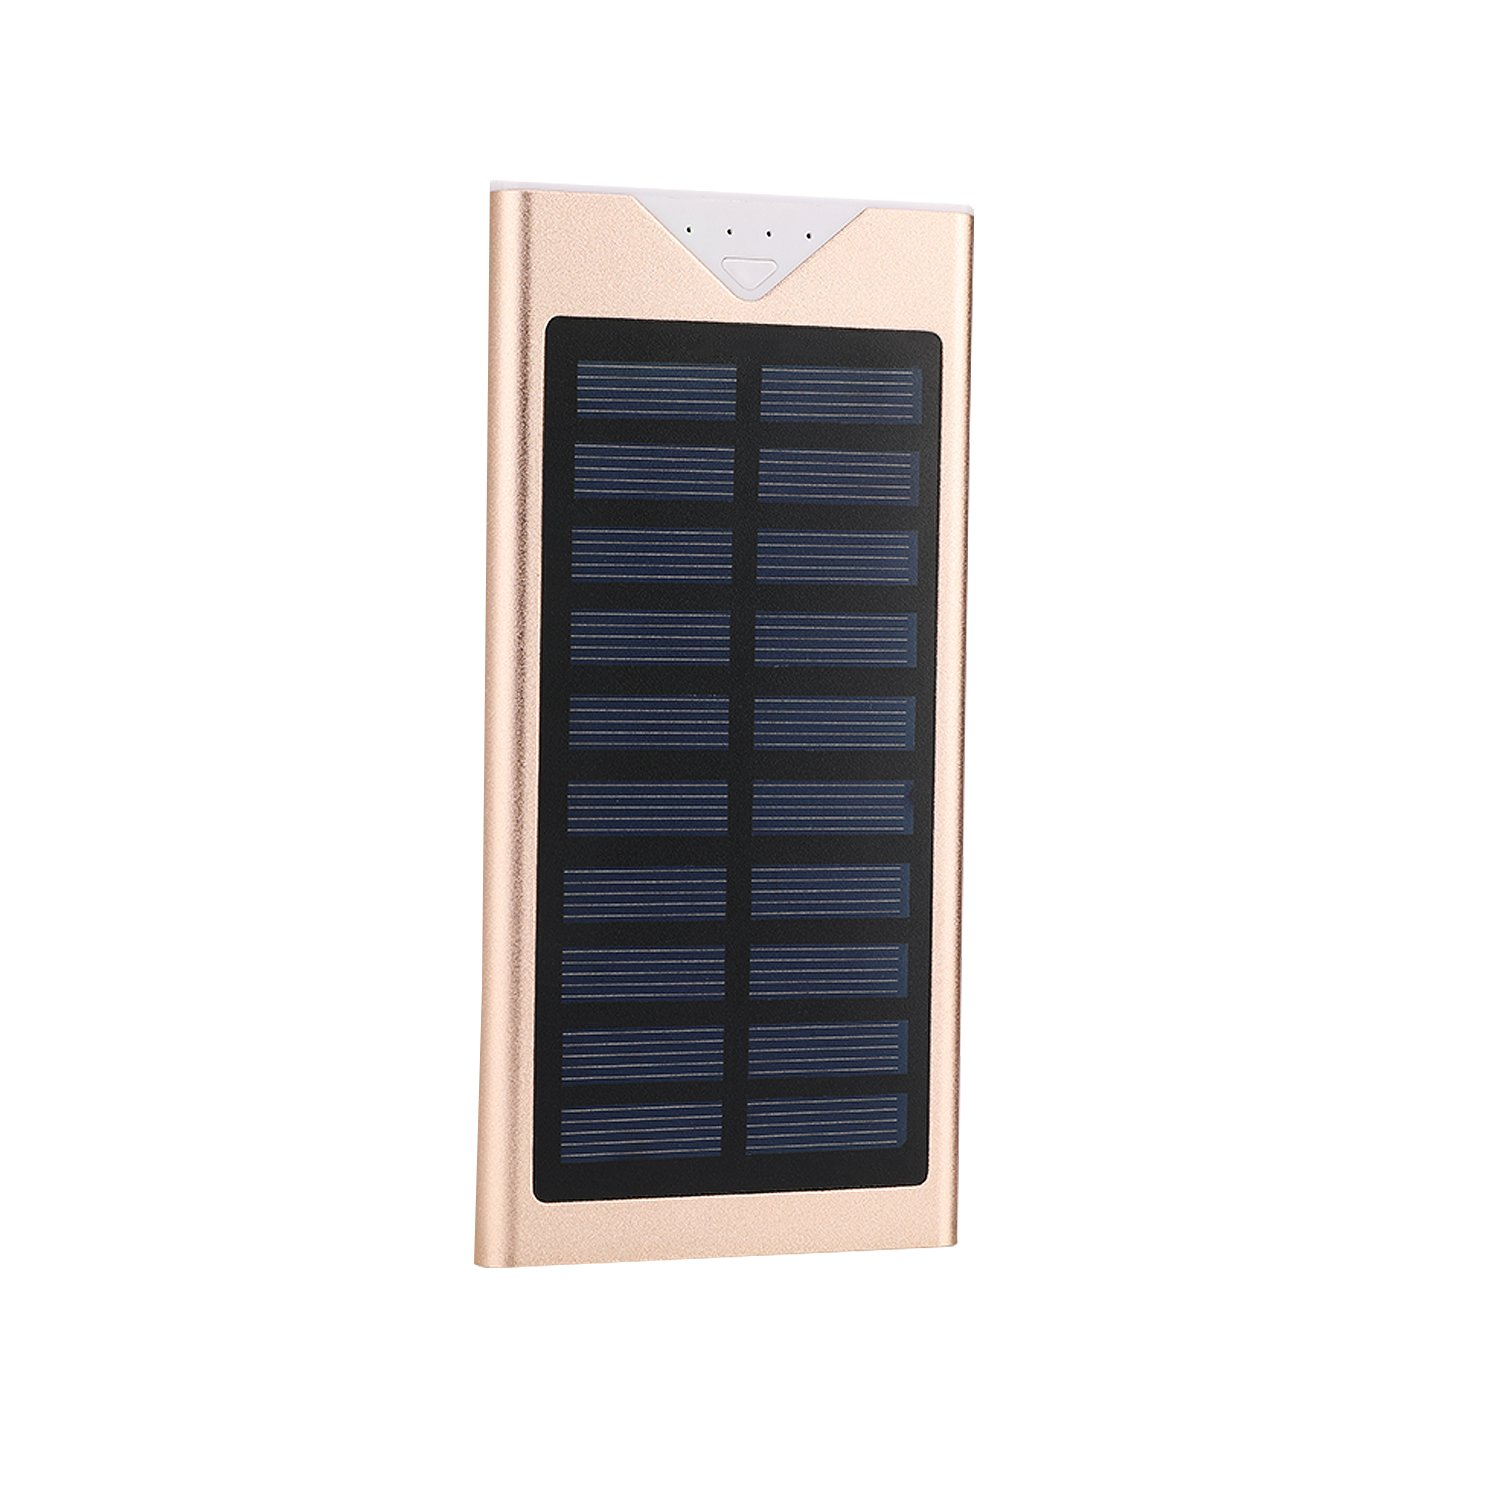 Solar Charger,Electric Camel 10800mAh Portable Solar Power Bank Dual USB LED Battery Charger for Outdoor iPhone,Samsung,Android phones,GoPro Camera,GPS and More (Champagne gold)